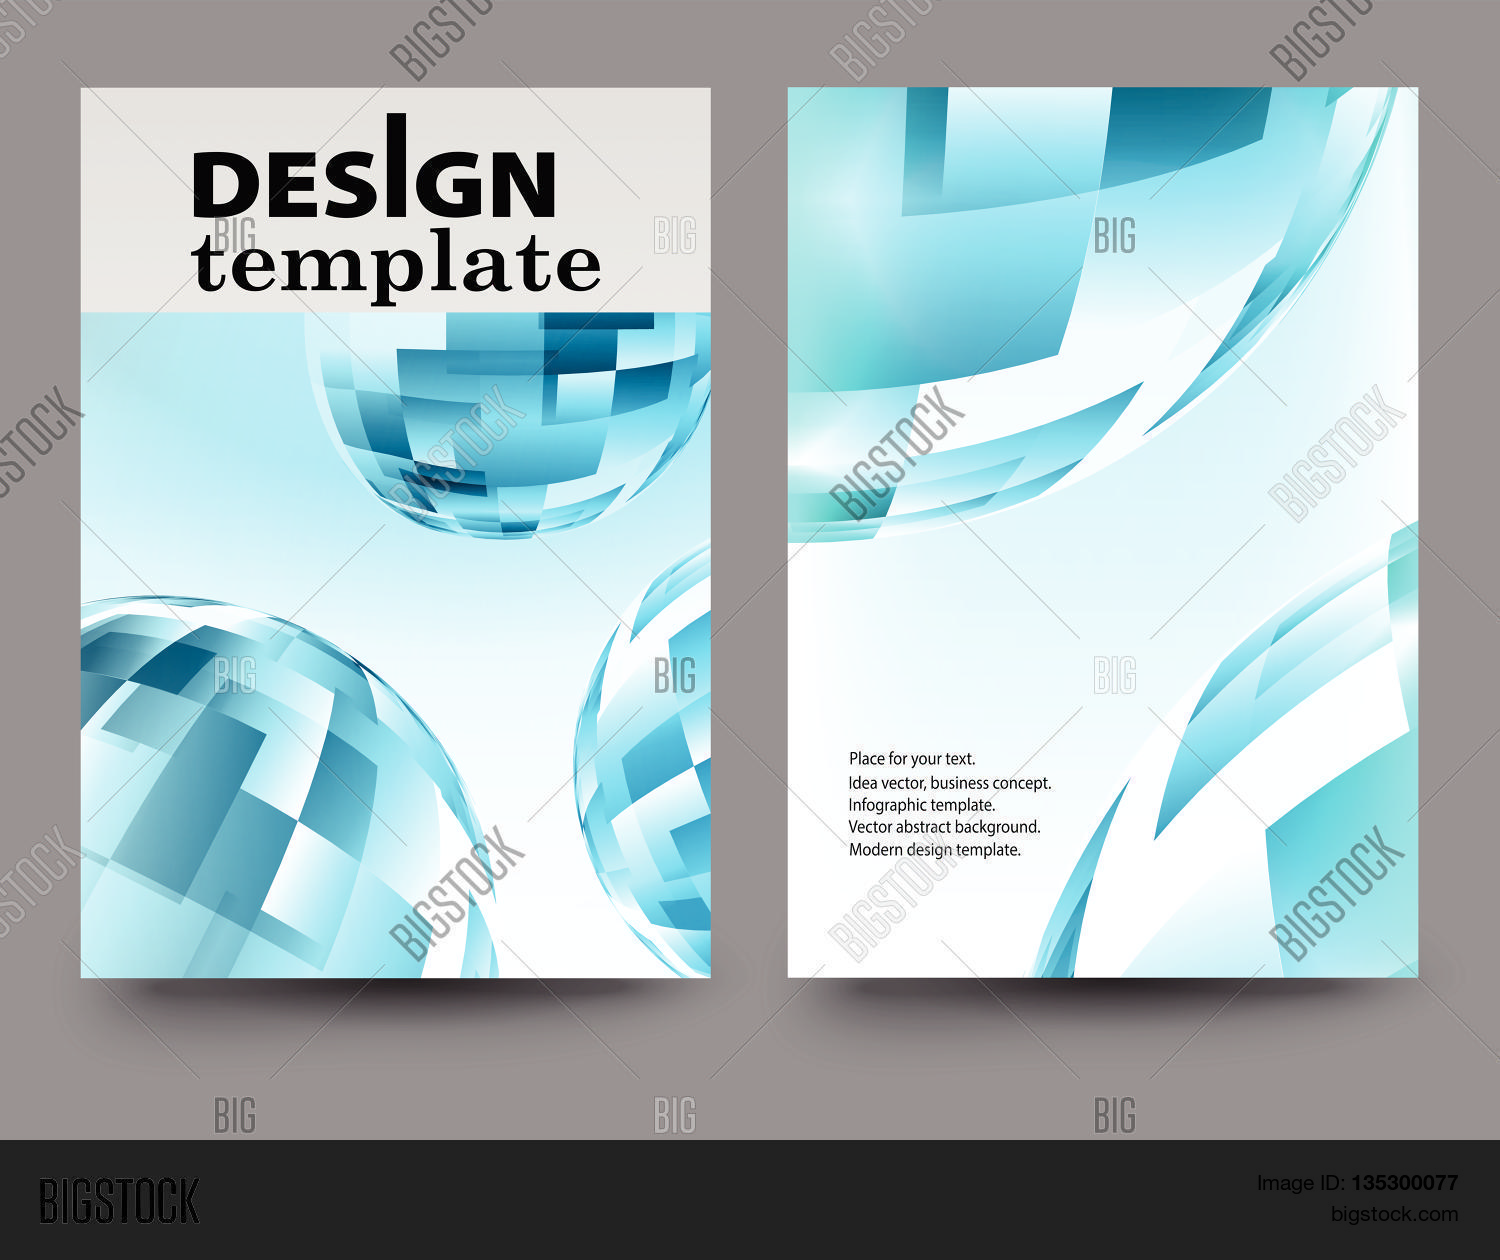 Brochure Design Template.Vector Vector & Photo | Bigstock